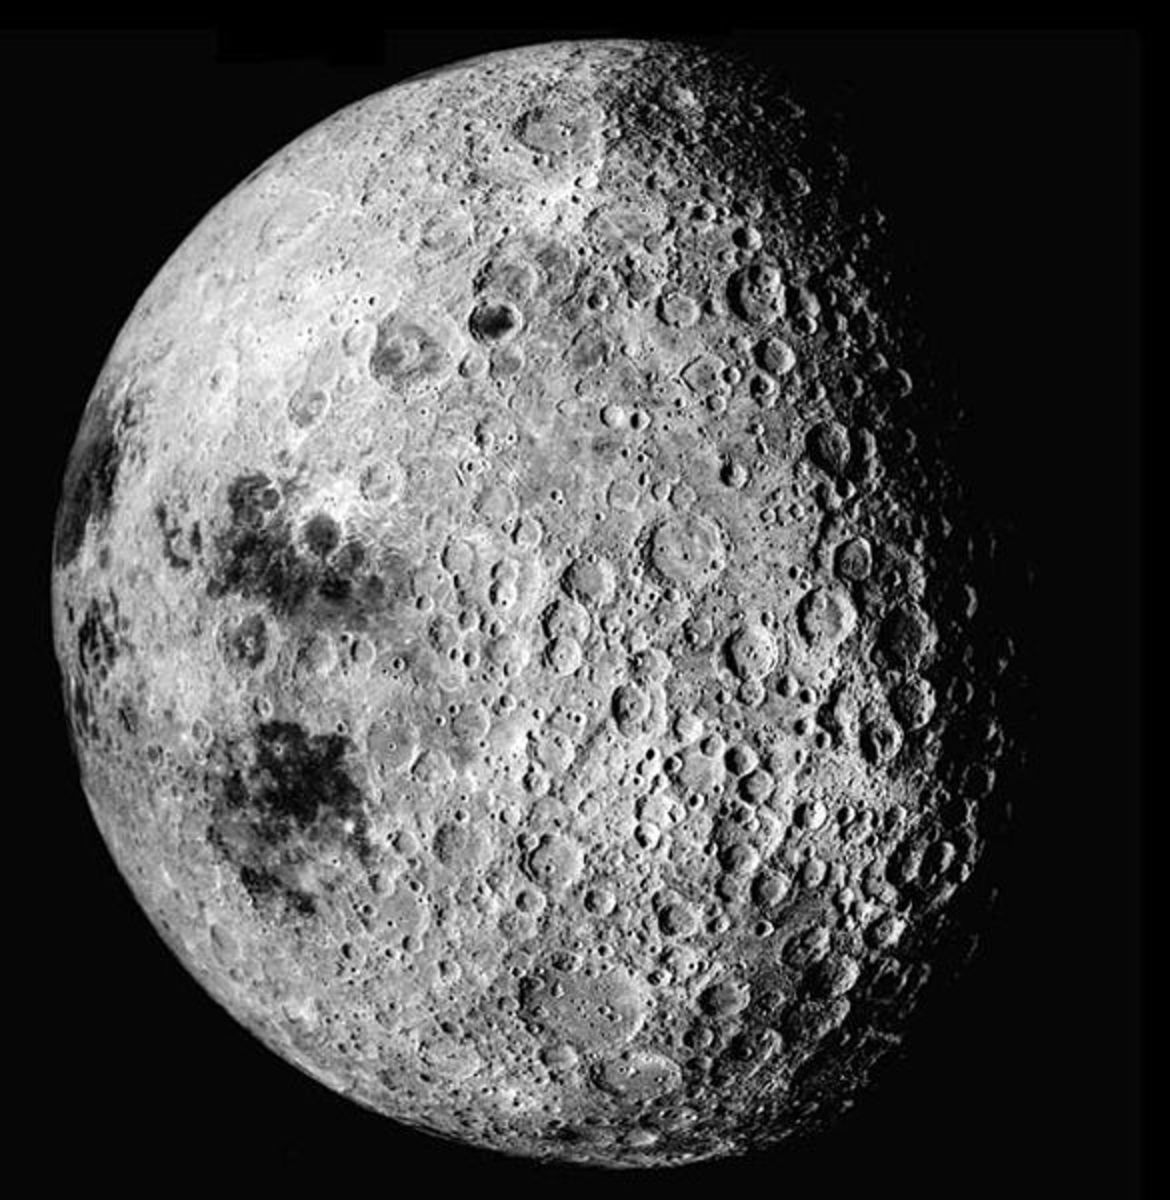 The far side of the moon is heavily pockmarked with impact craters.